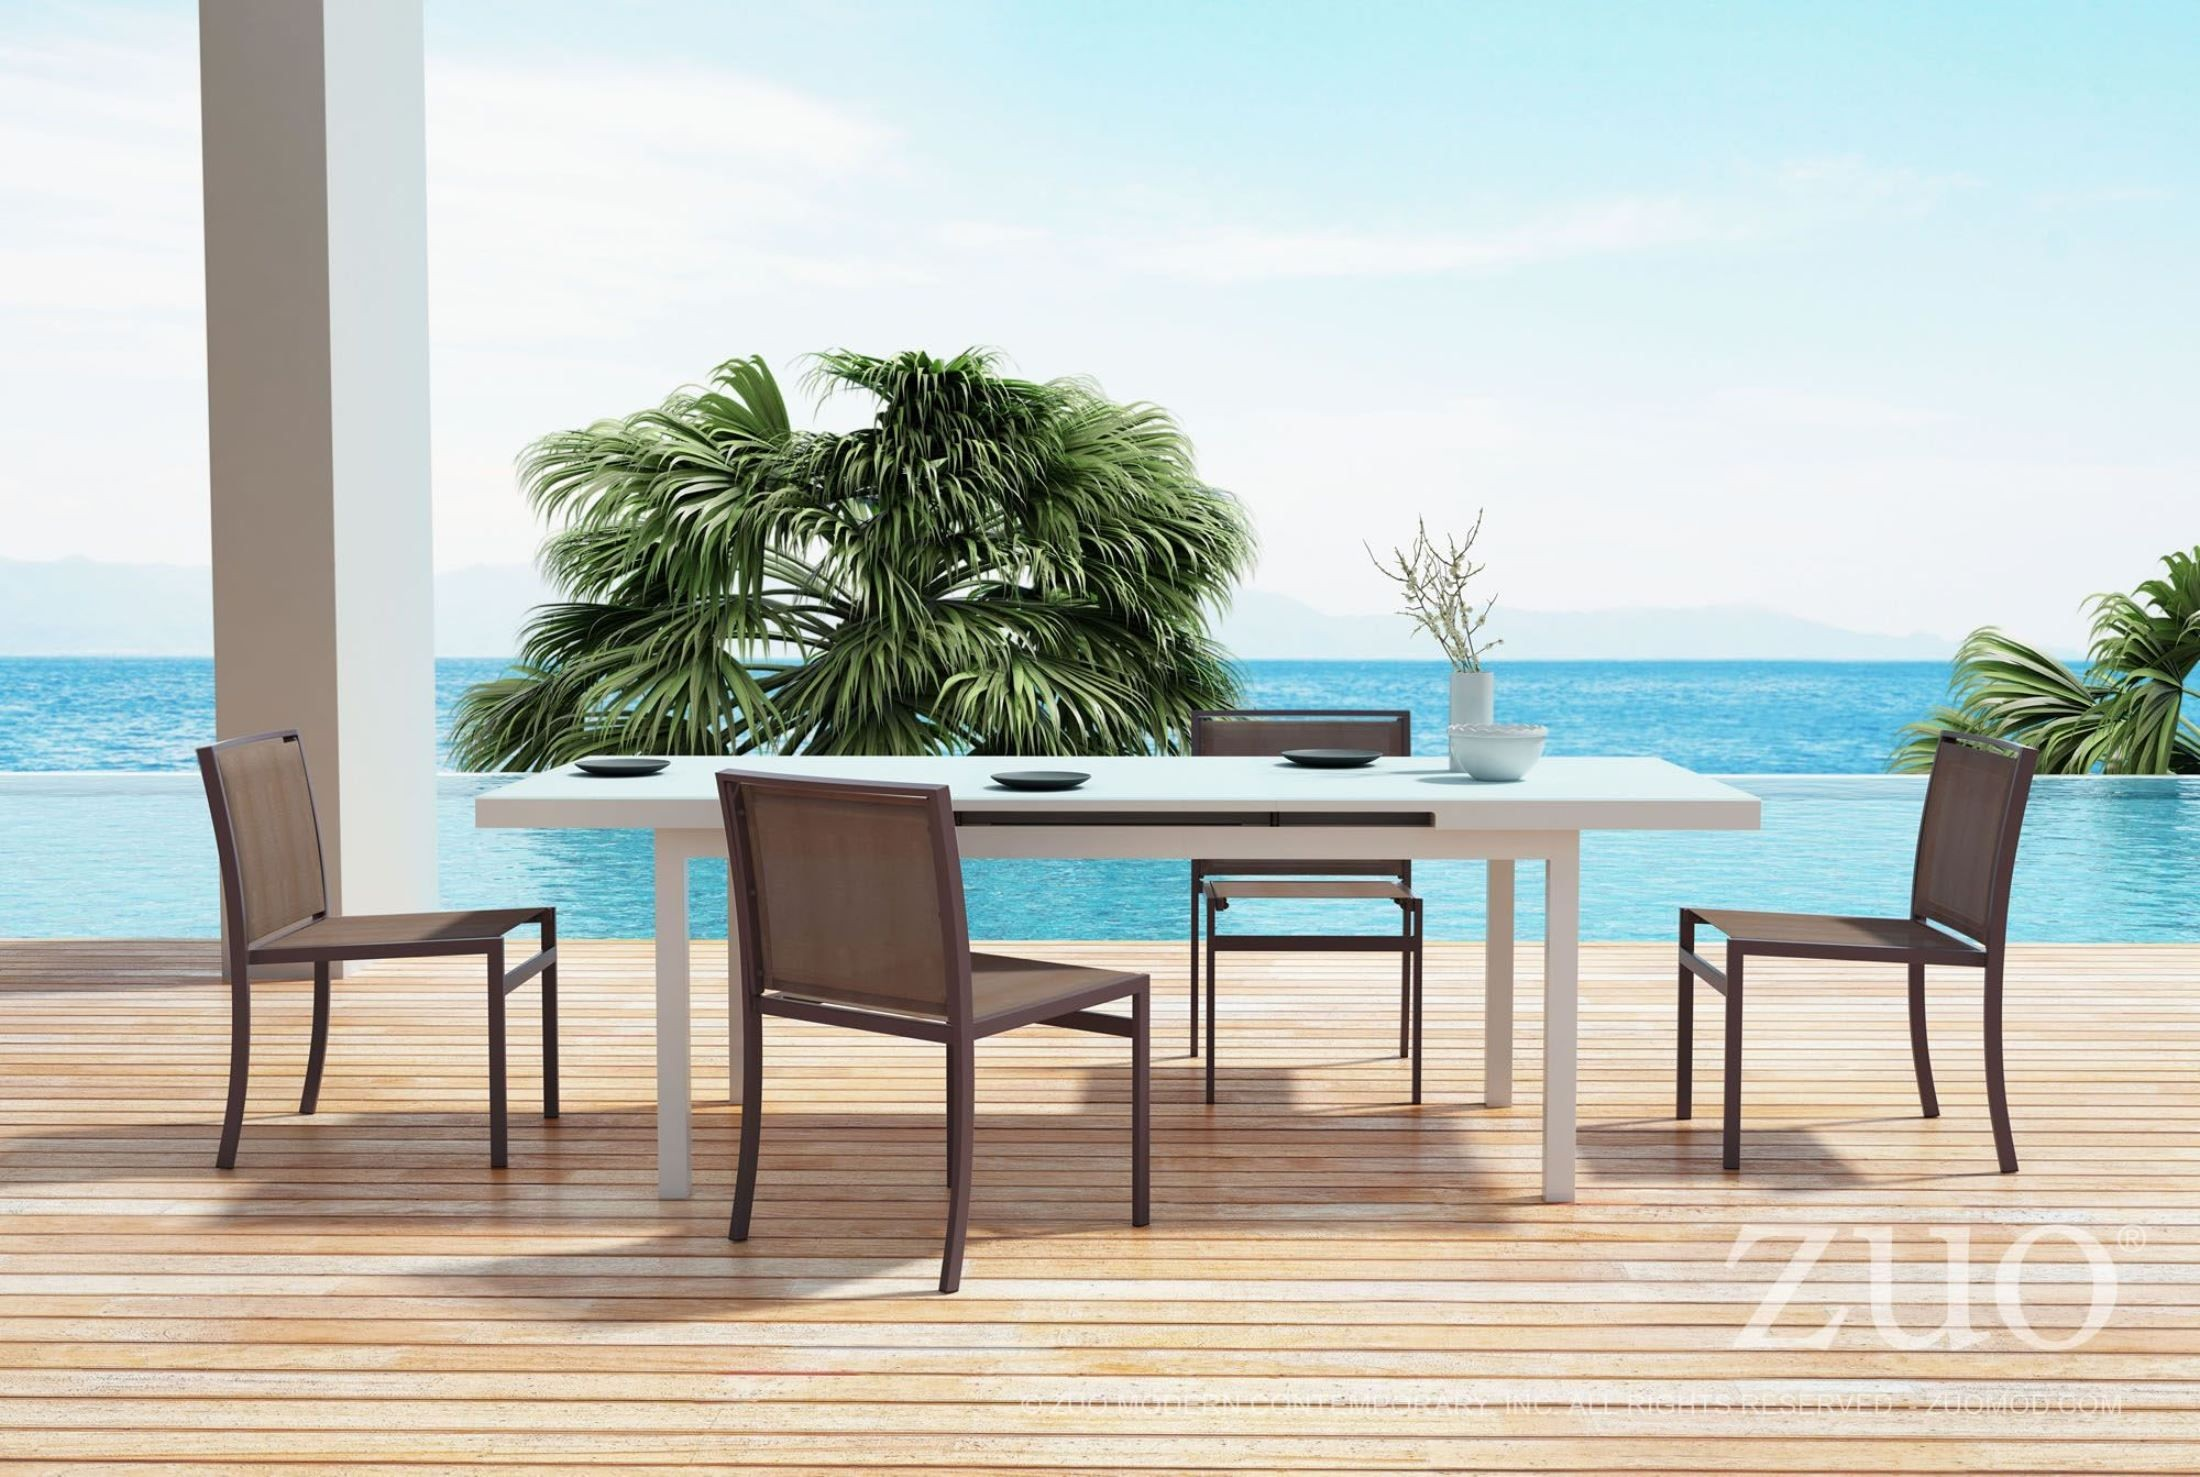 Zuo furniture elegant image of zuo modern furniture for Good places to get furniture